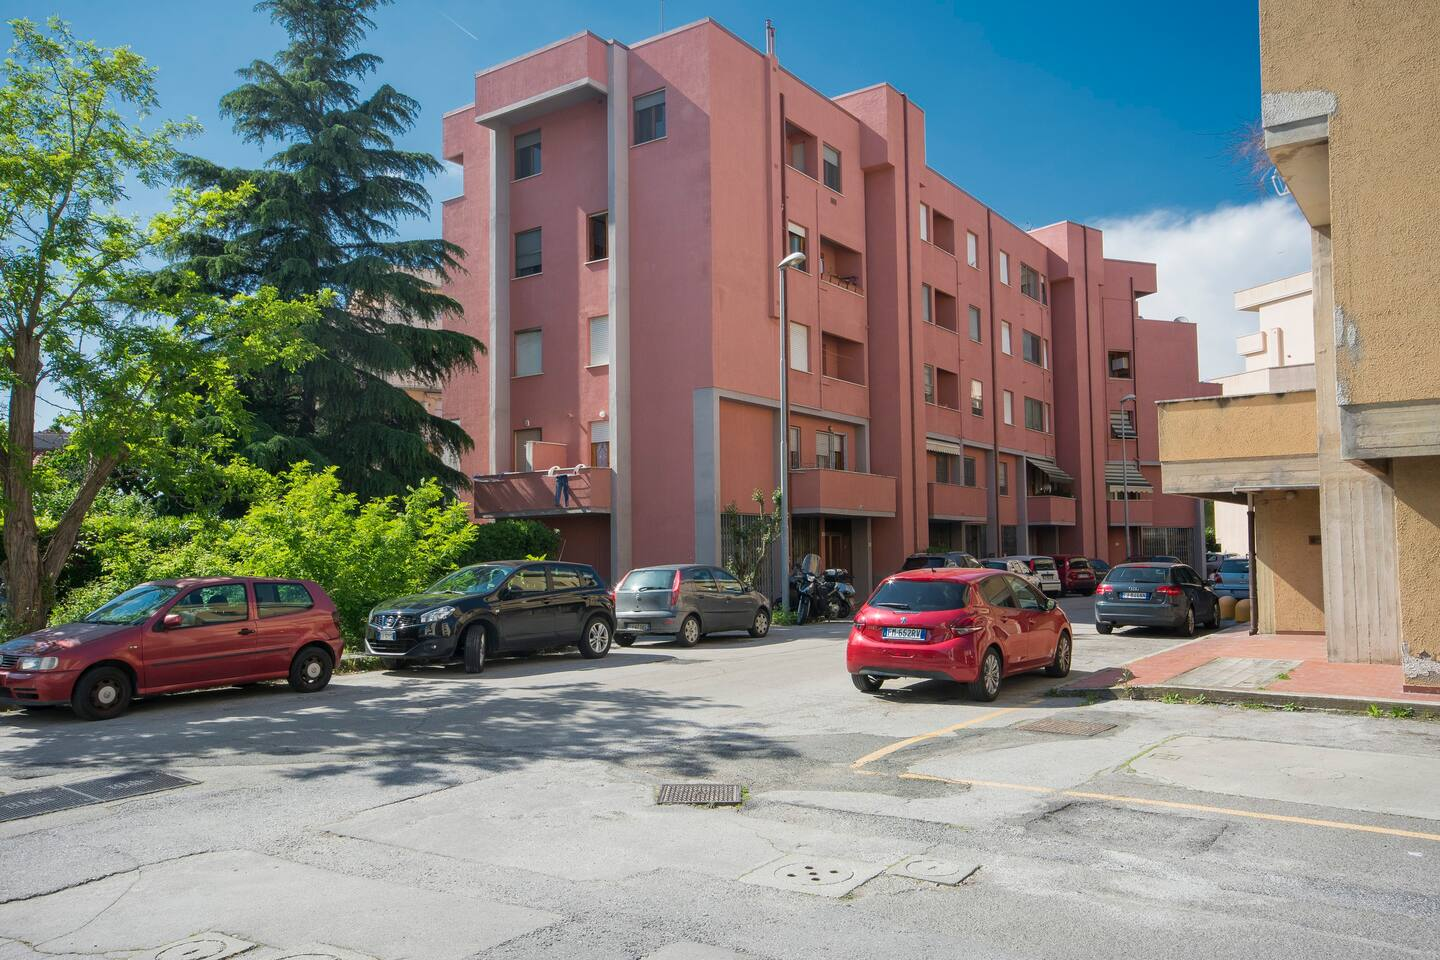 Apartment Hintown Cisanello Flat photo 16910033